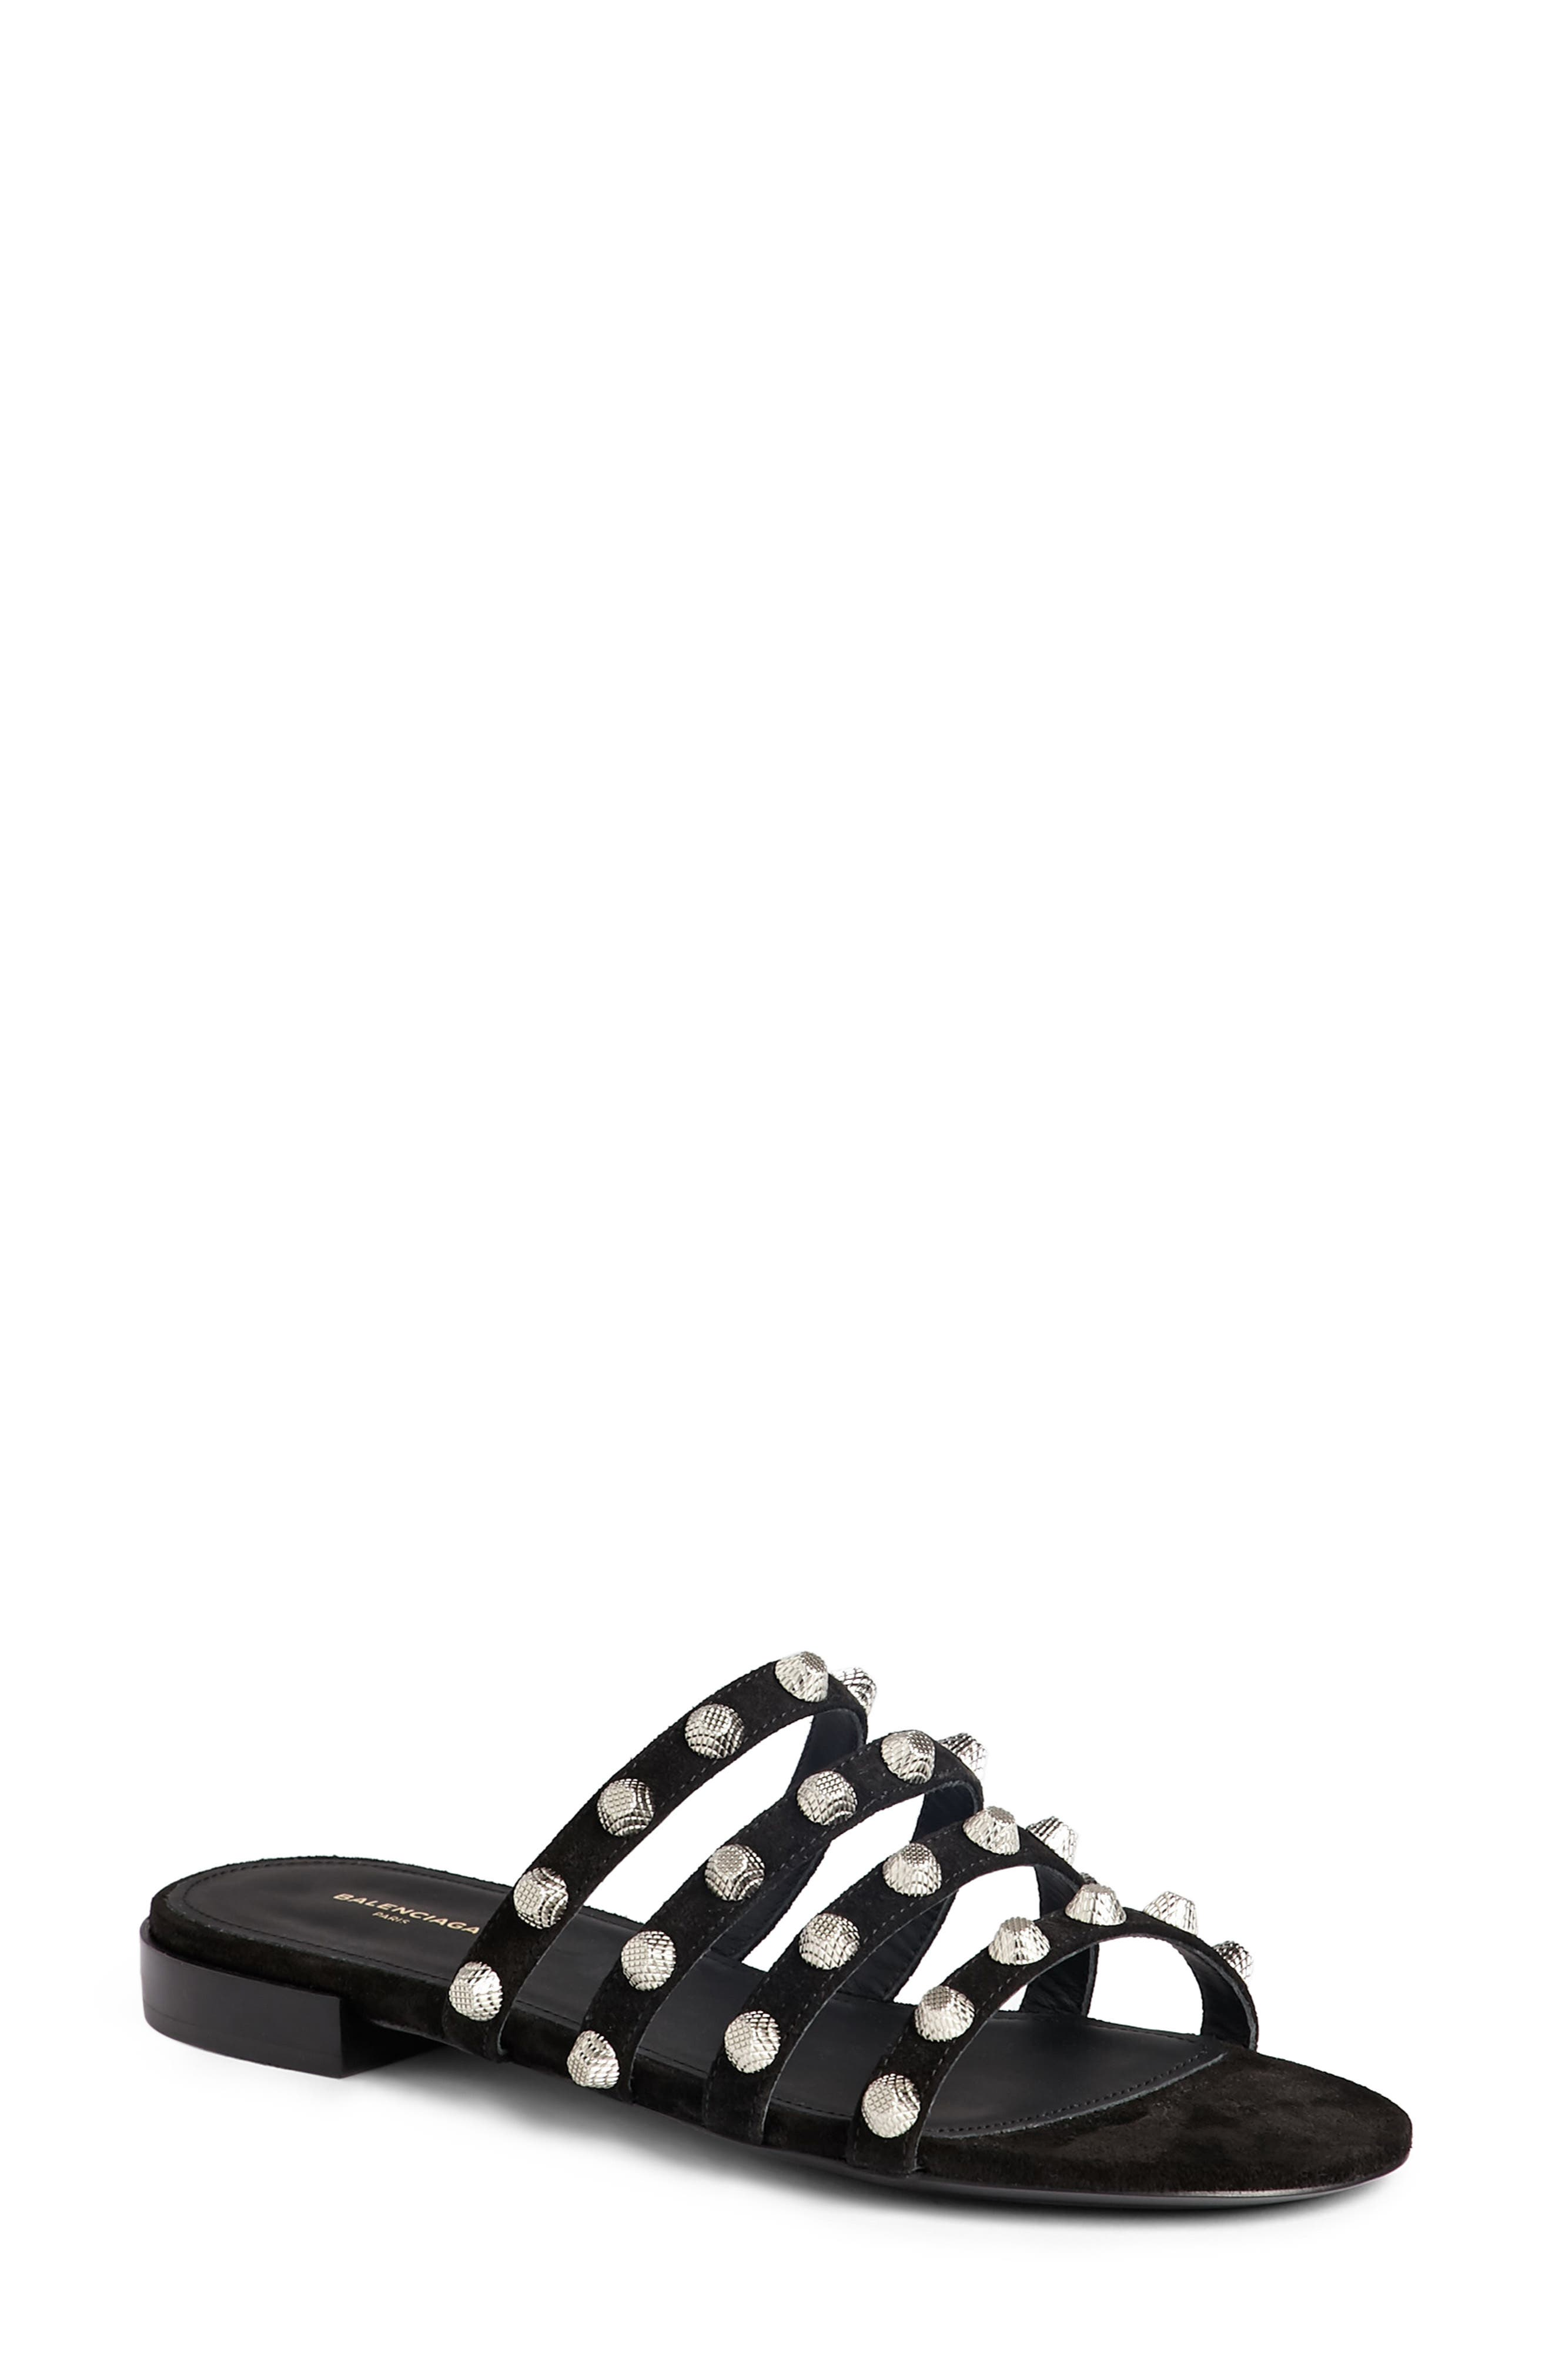 Studded Slide Sandal,                         Main,                         color, Black